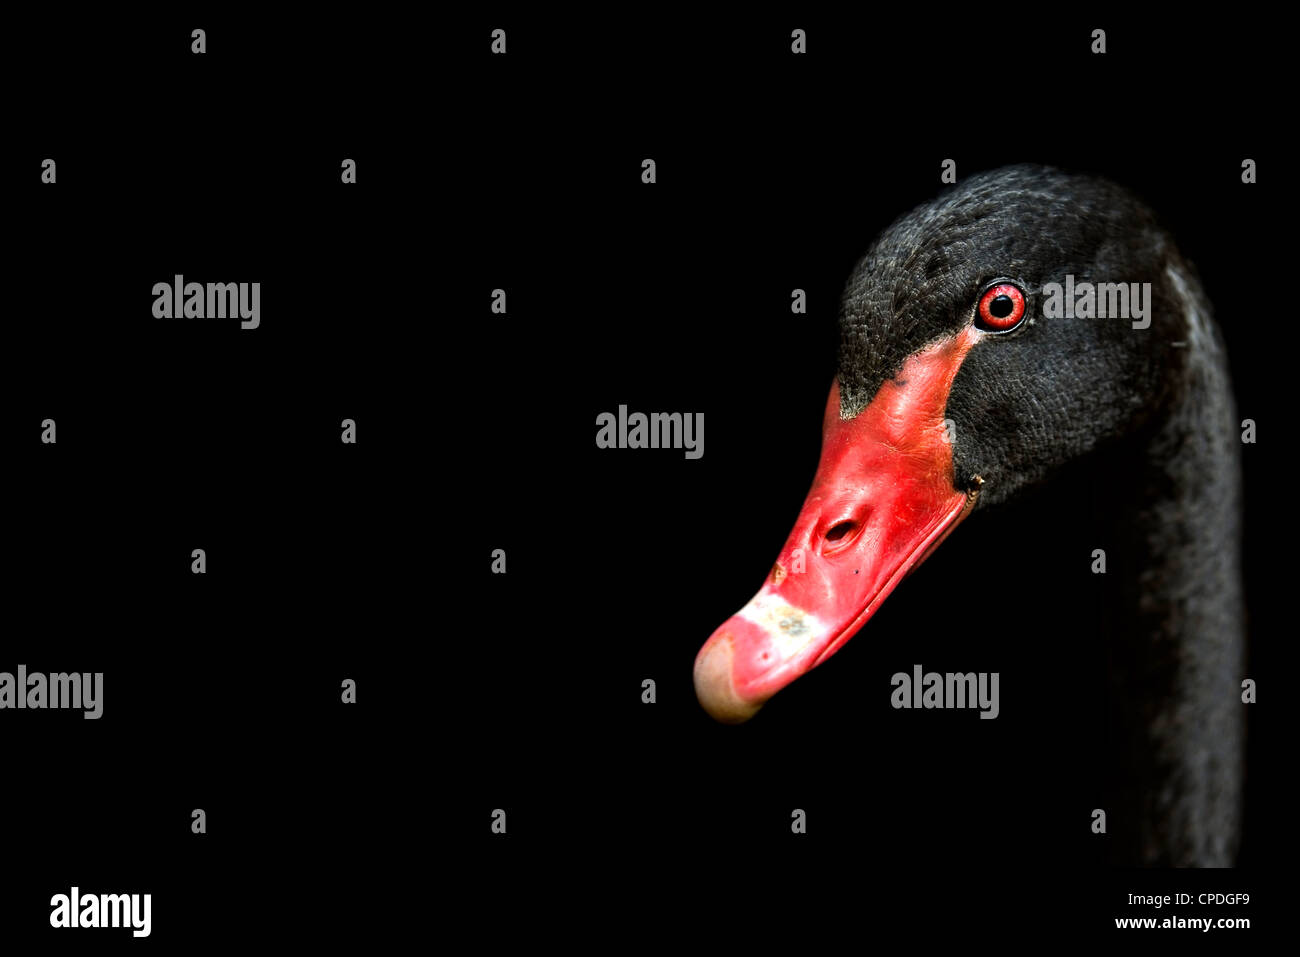 Close-up of a black swan showing off the intense red against black background - Stock Image